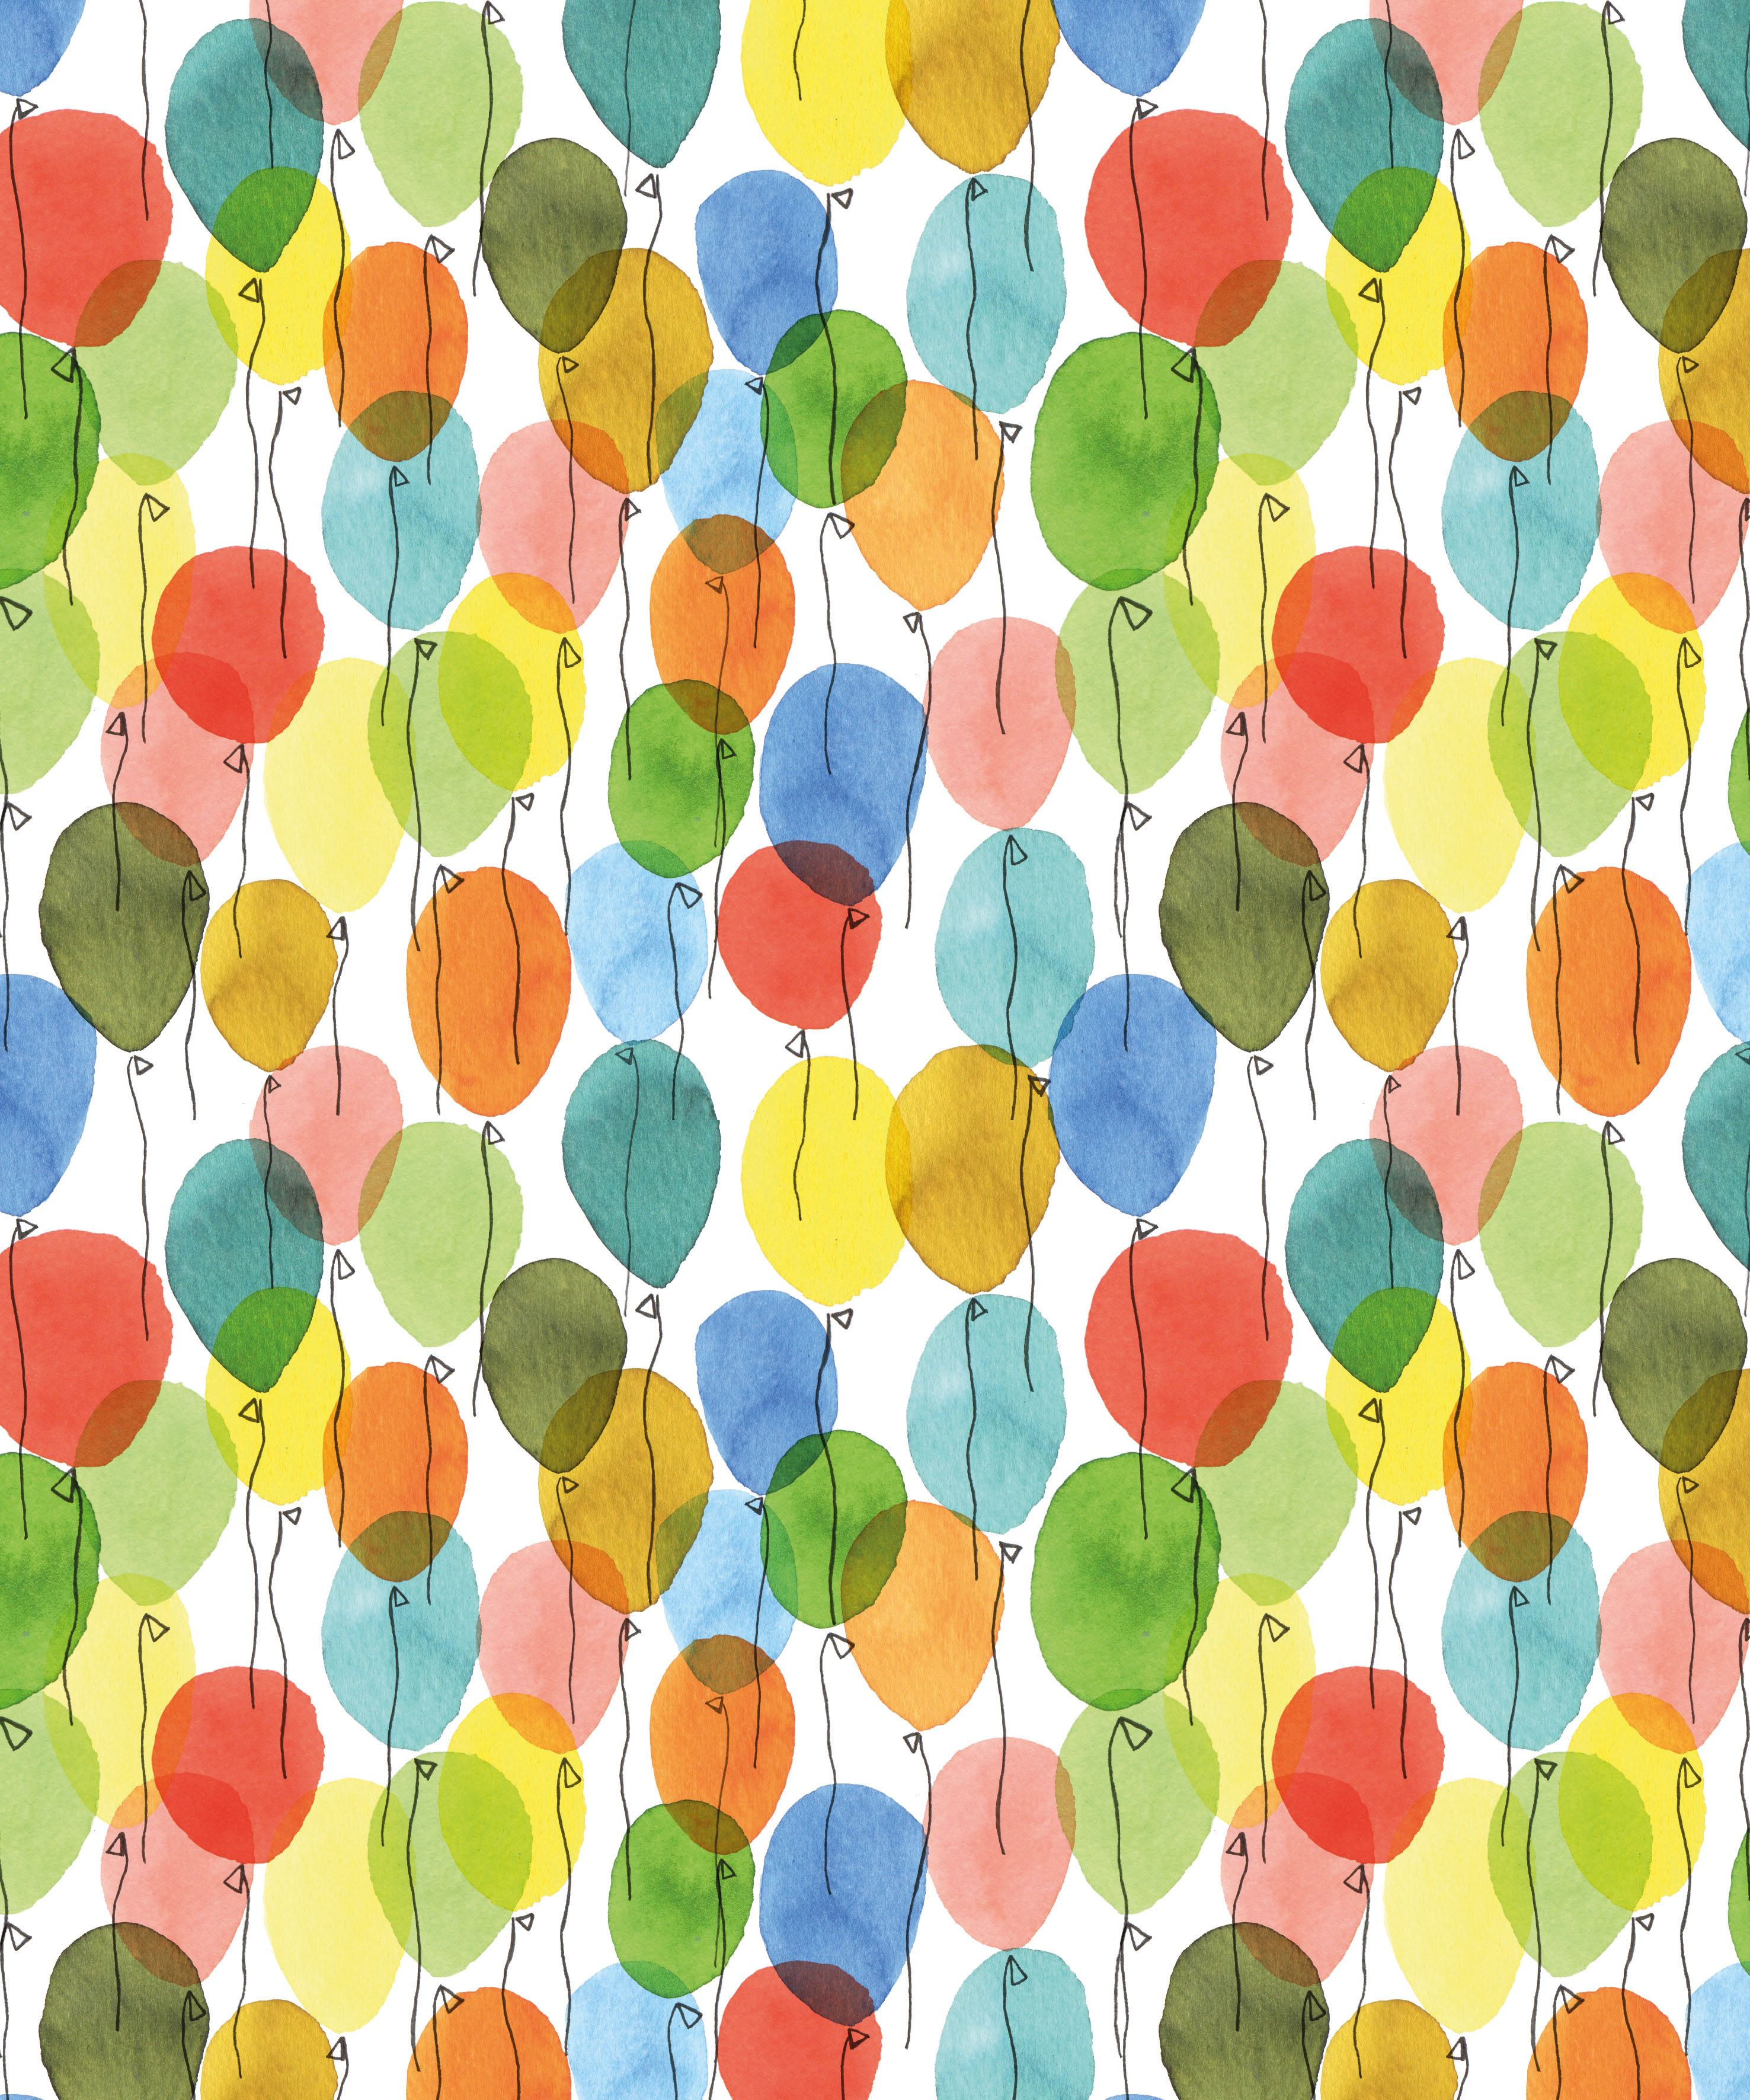 Color Full Of Balloons CB